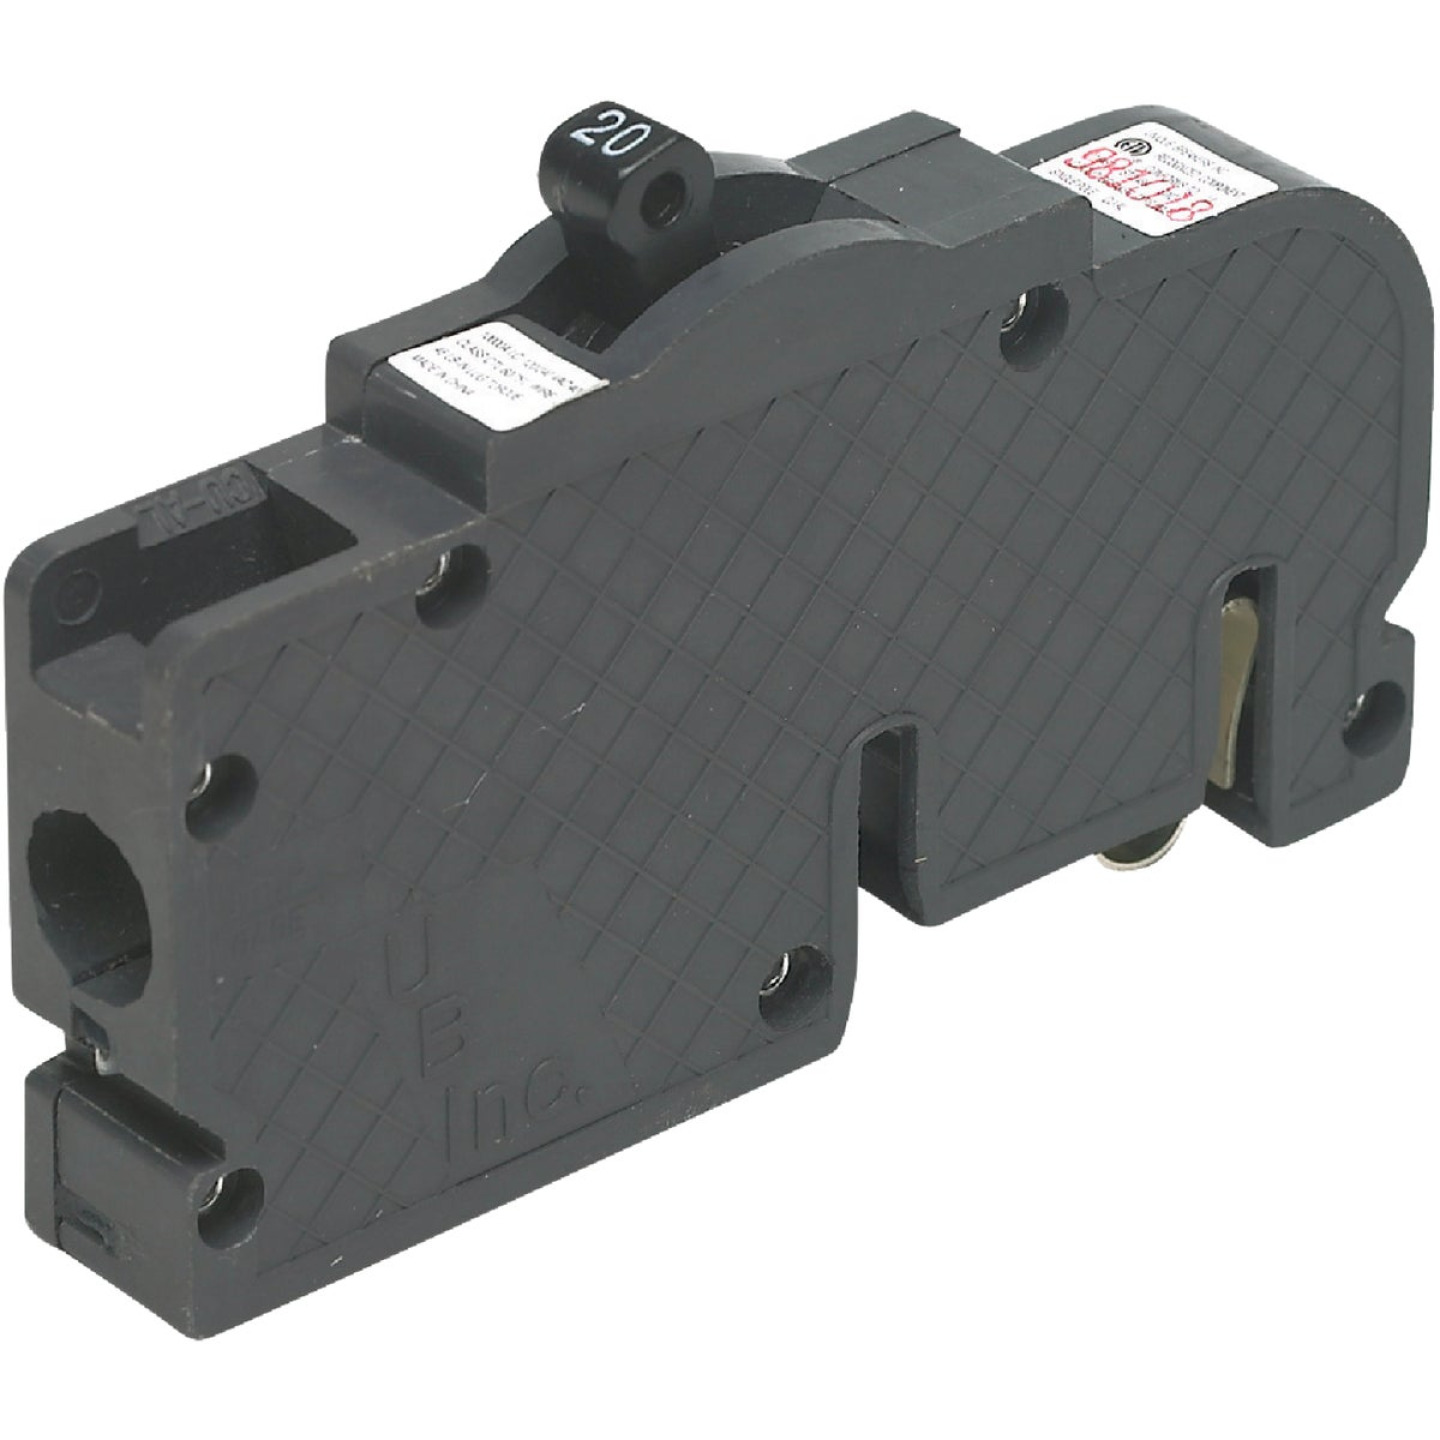 Connecticut Electric 20A Single-Pole Standard Trip Packaged Replacement Circuit Breaker For Zinsco Image 4